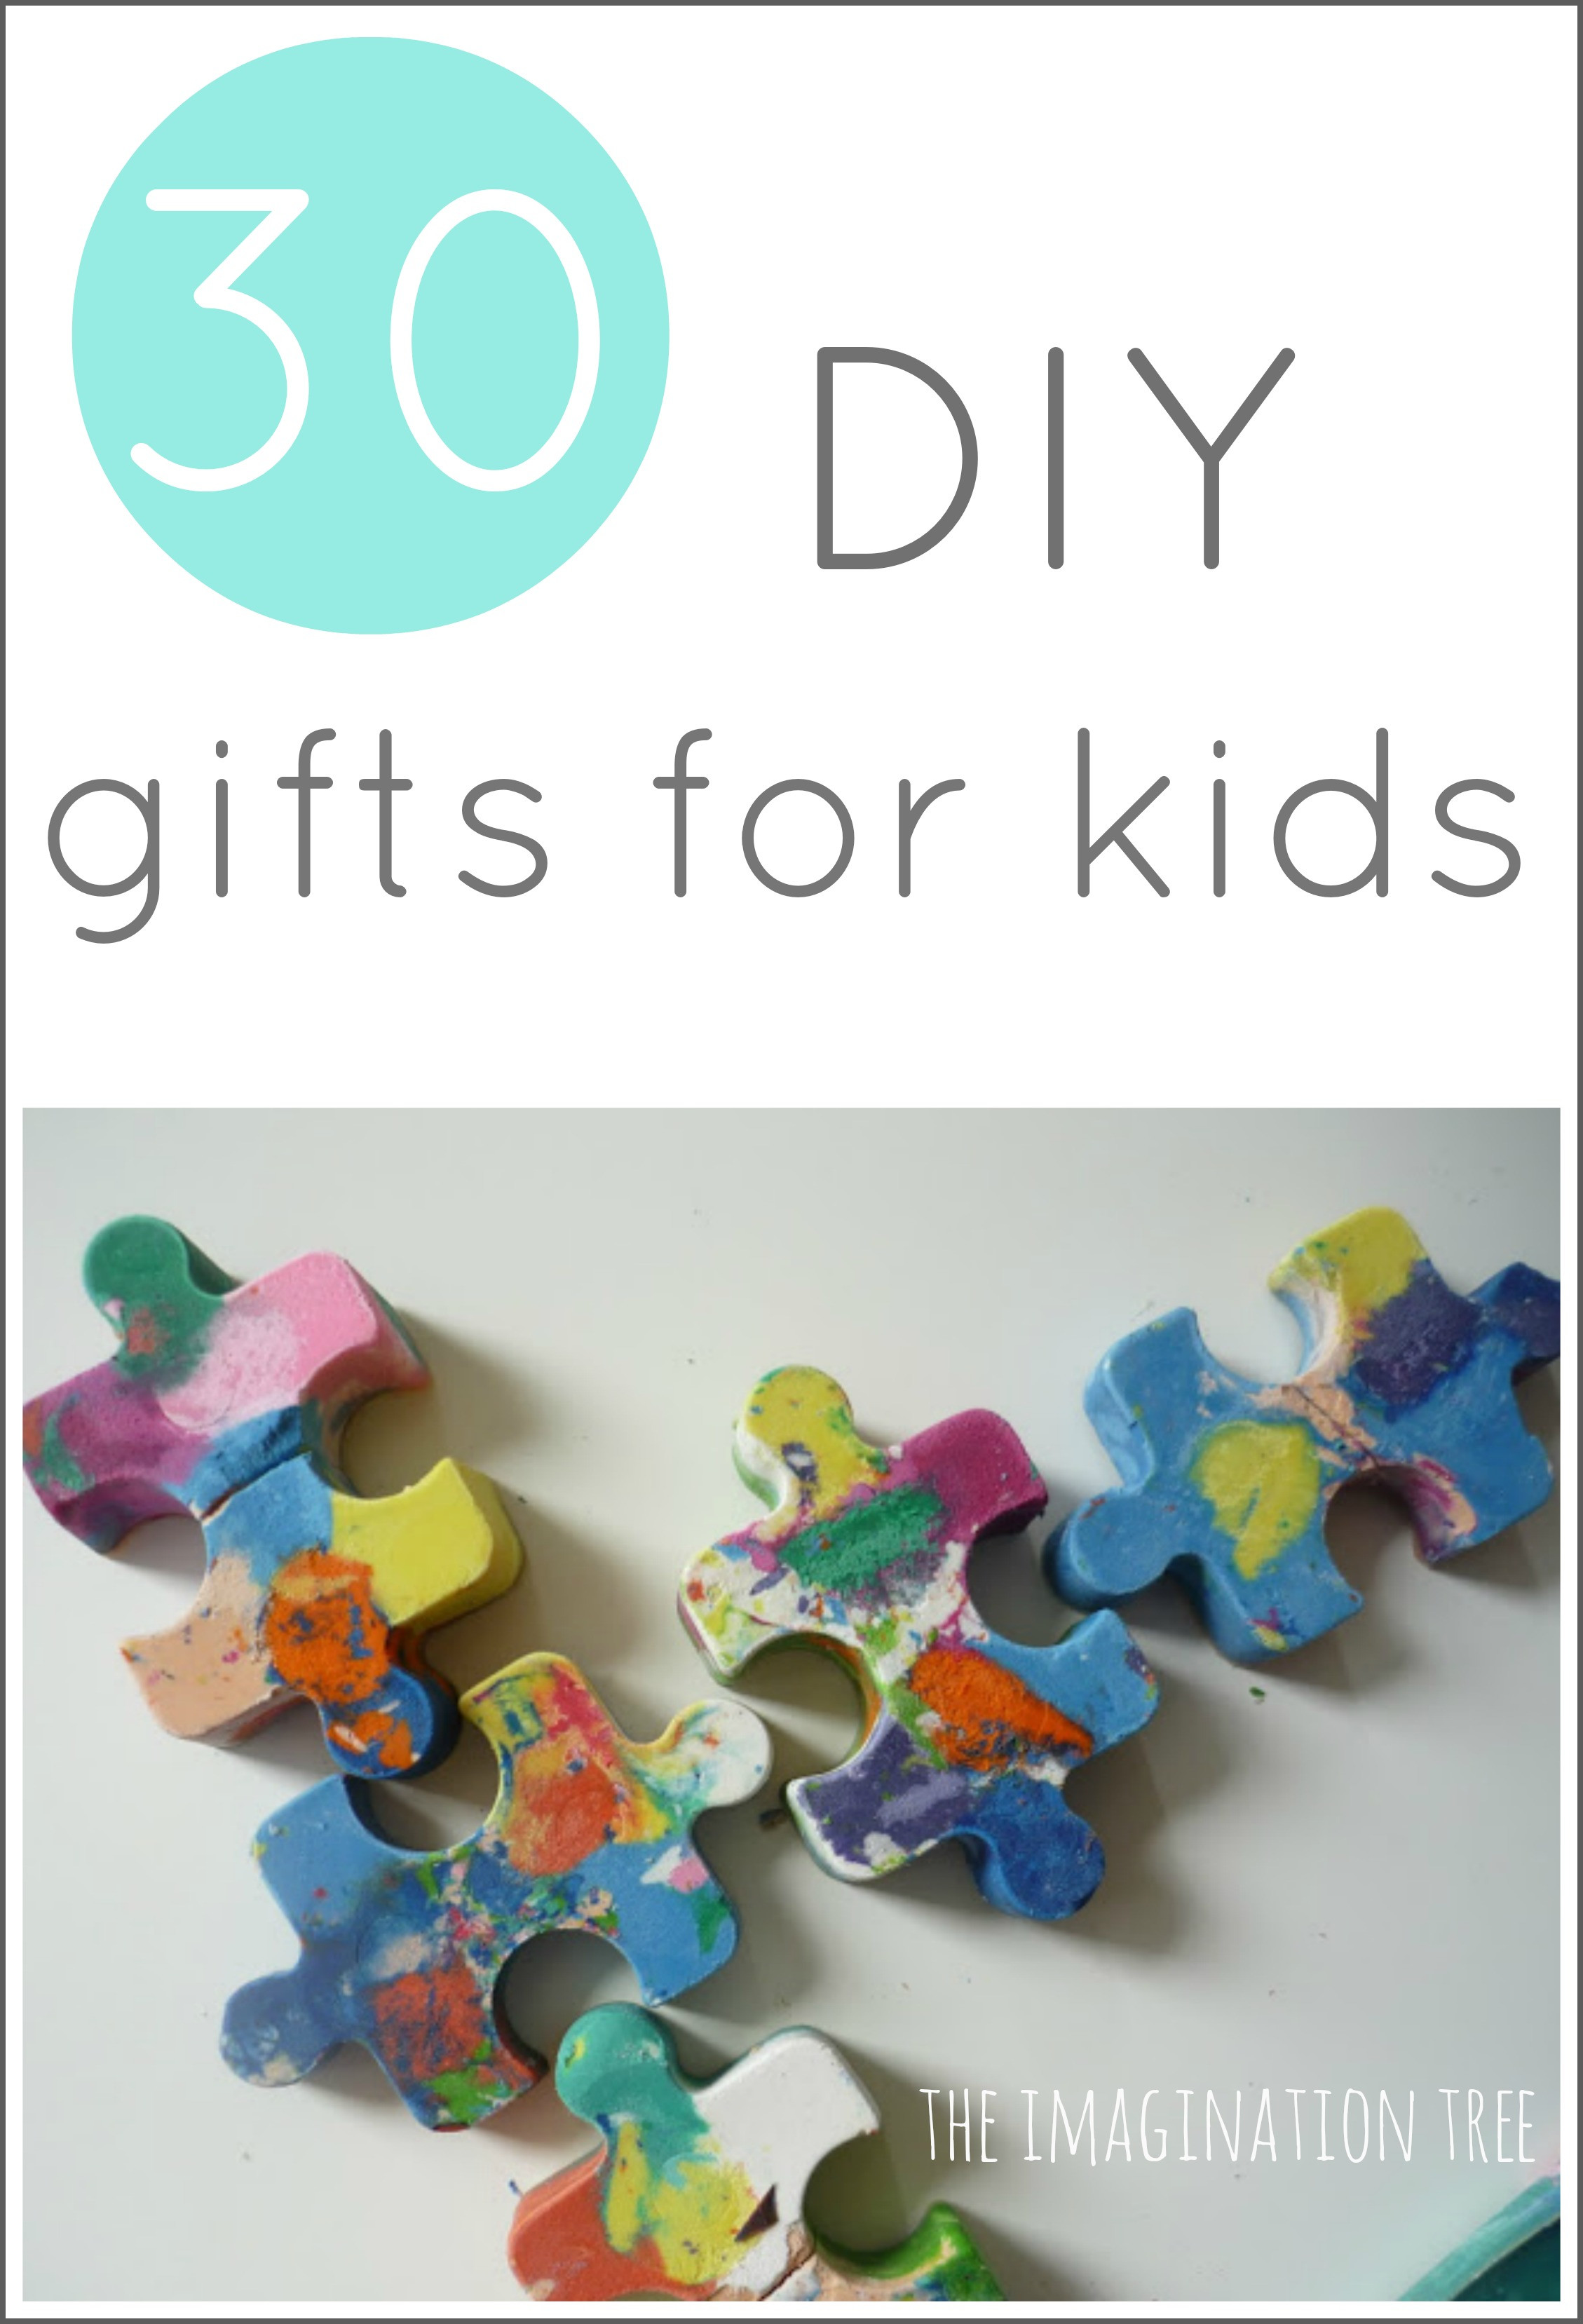 Best ideas about DIY For Kids . Save or Pin 30 DIY Gifts to Make for Kids The Imagination Tree Now.